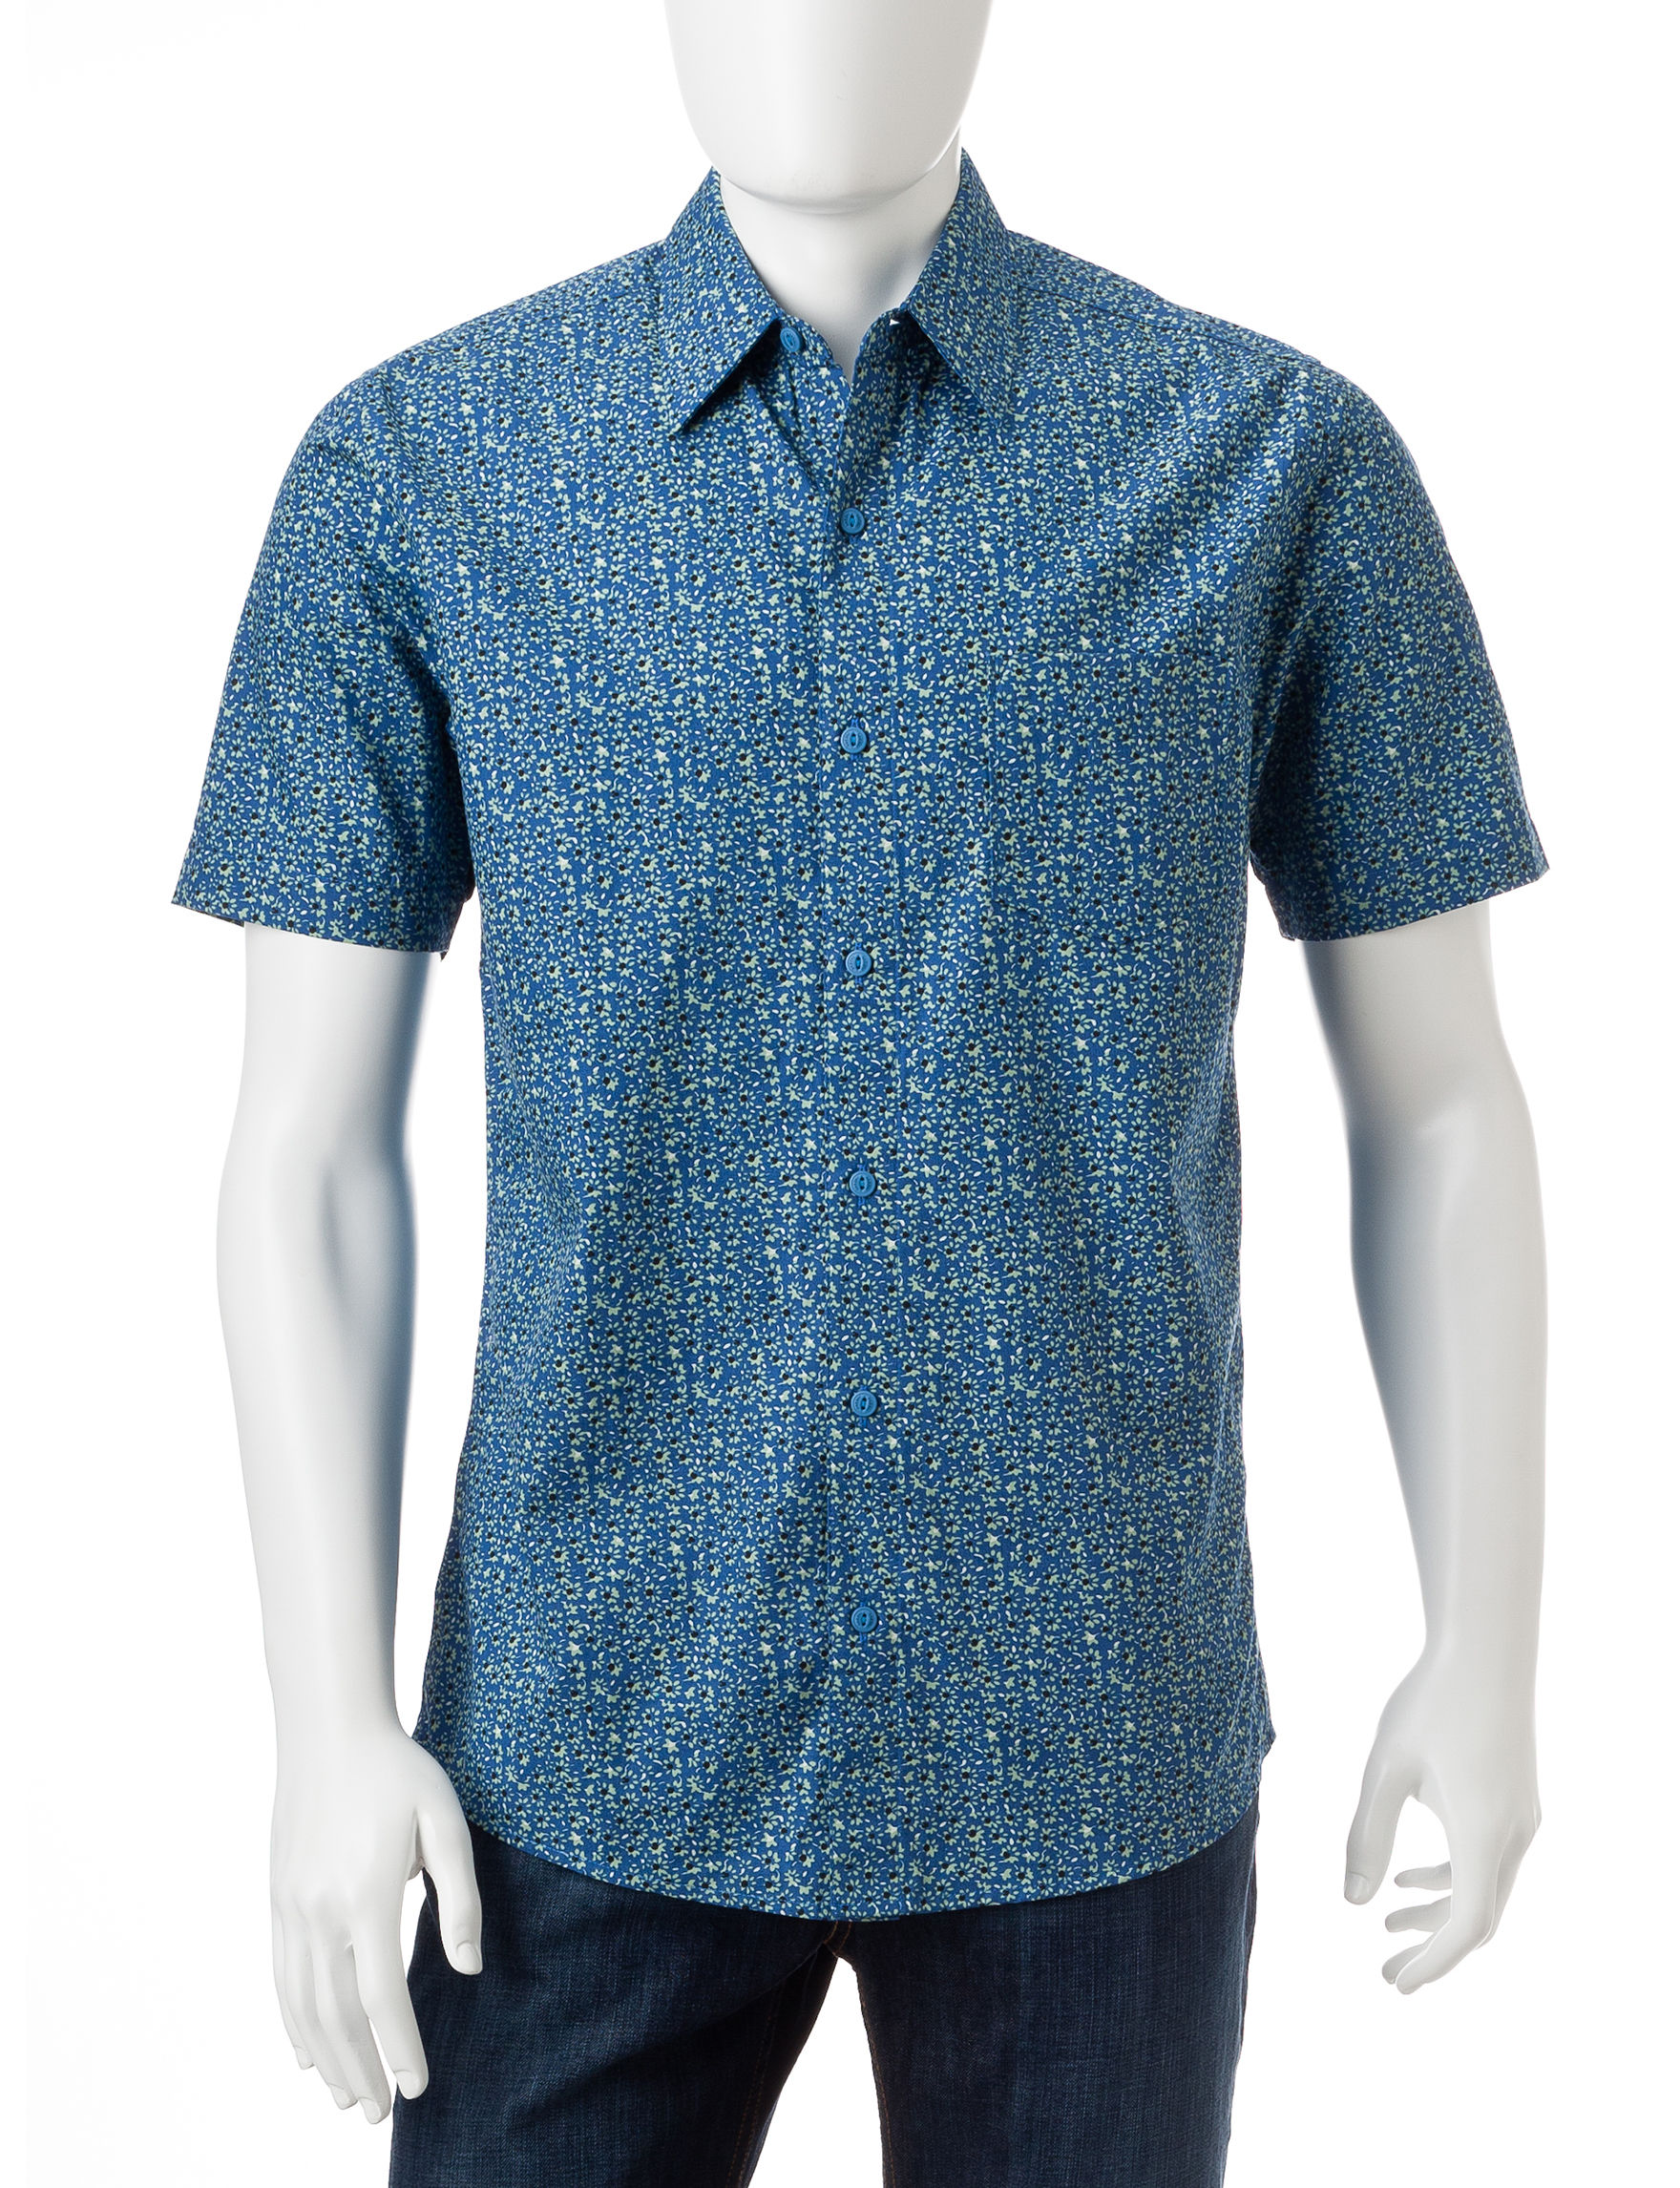 Haggar Blueberry Acai Casual Button Down Shirts